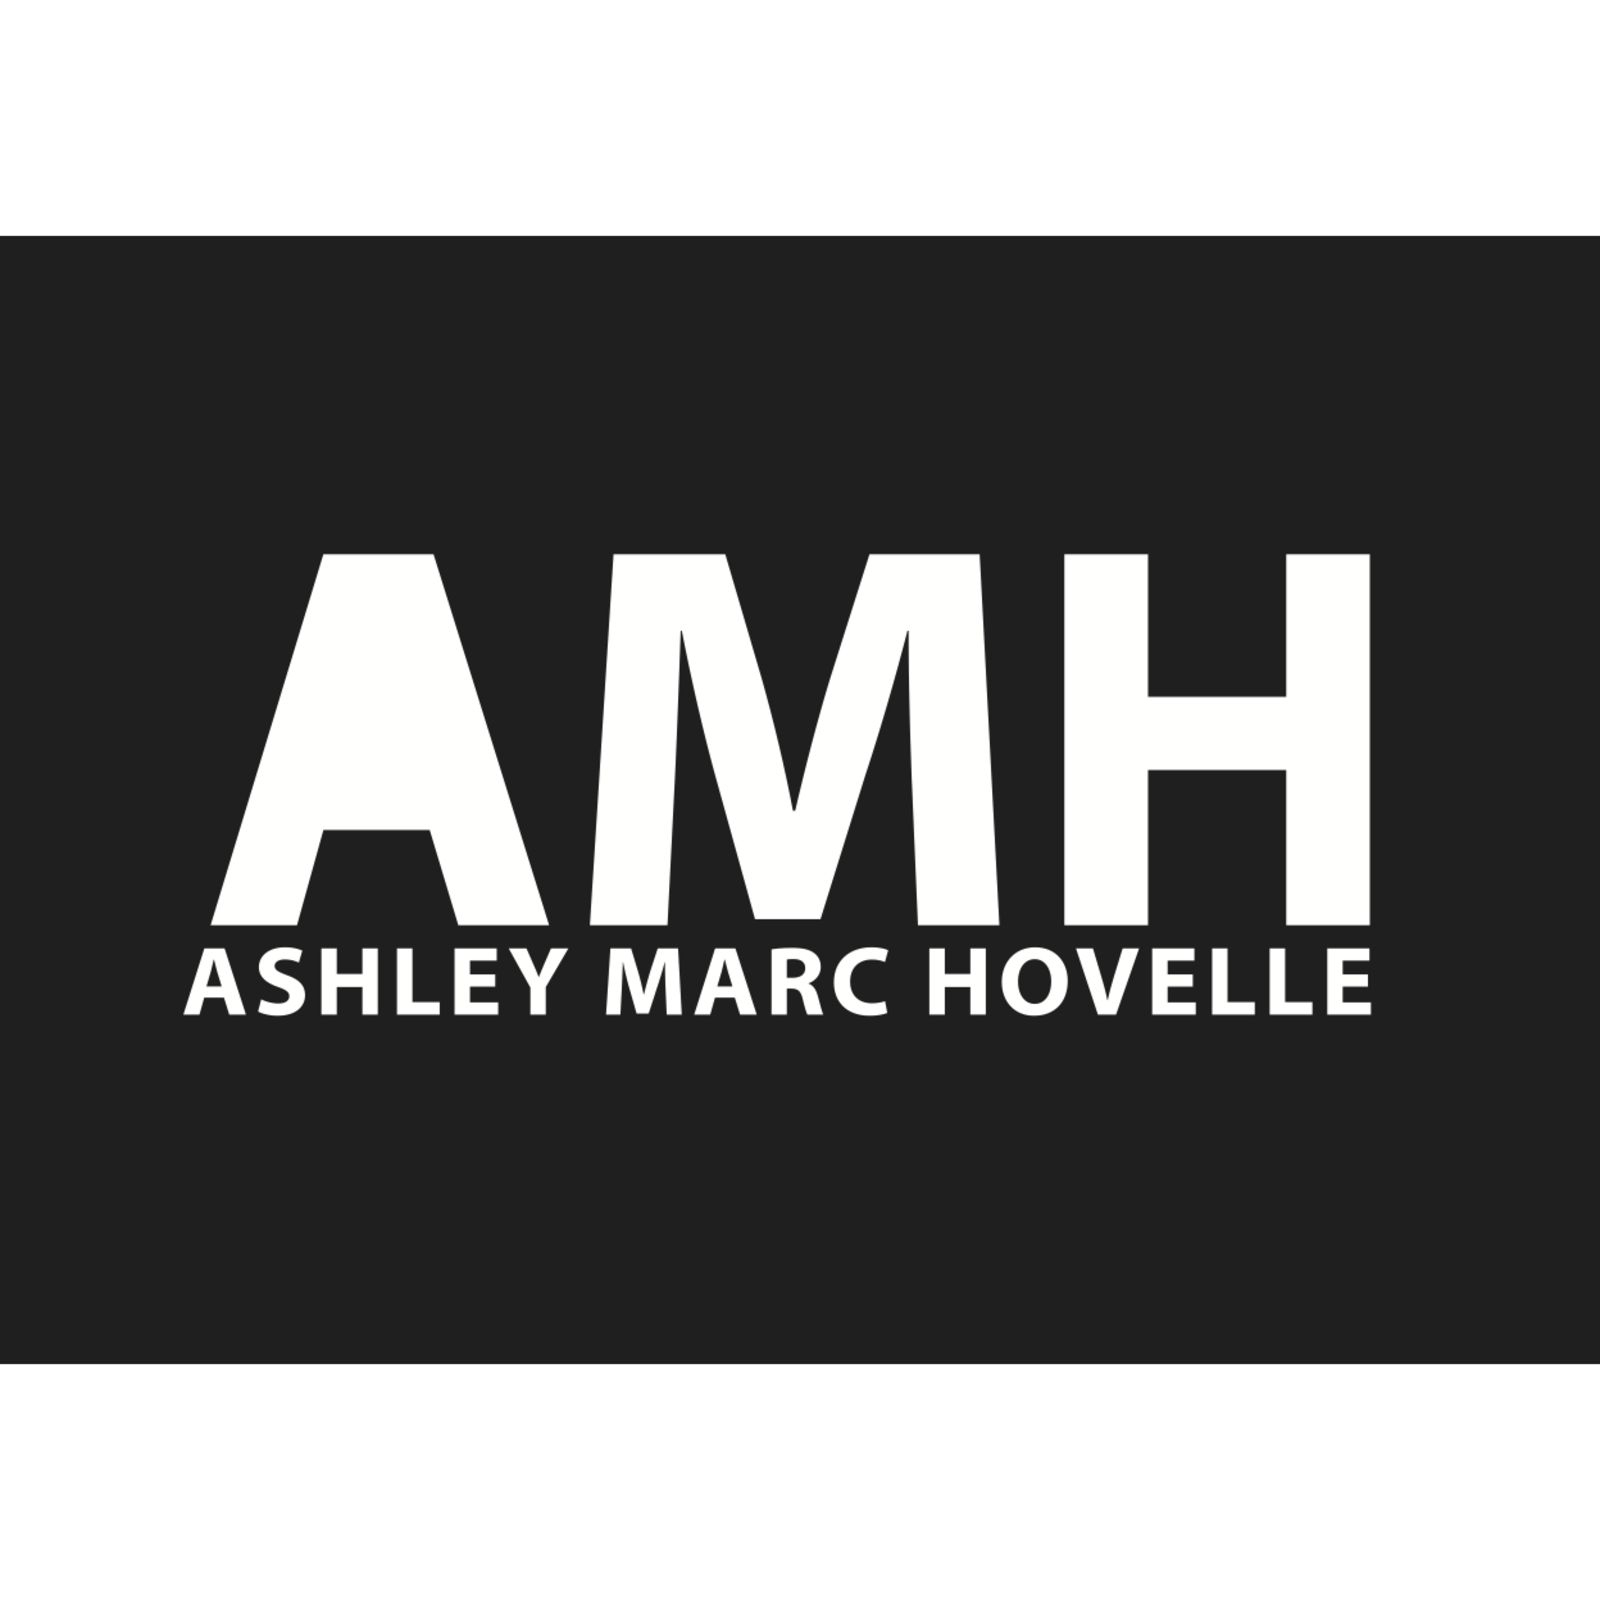 AMH ASHLEY MARC HOVELLE